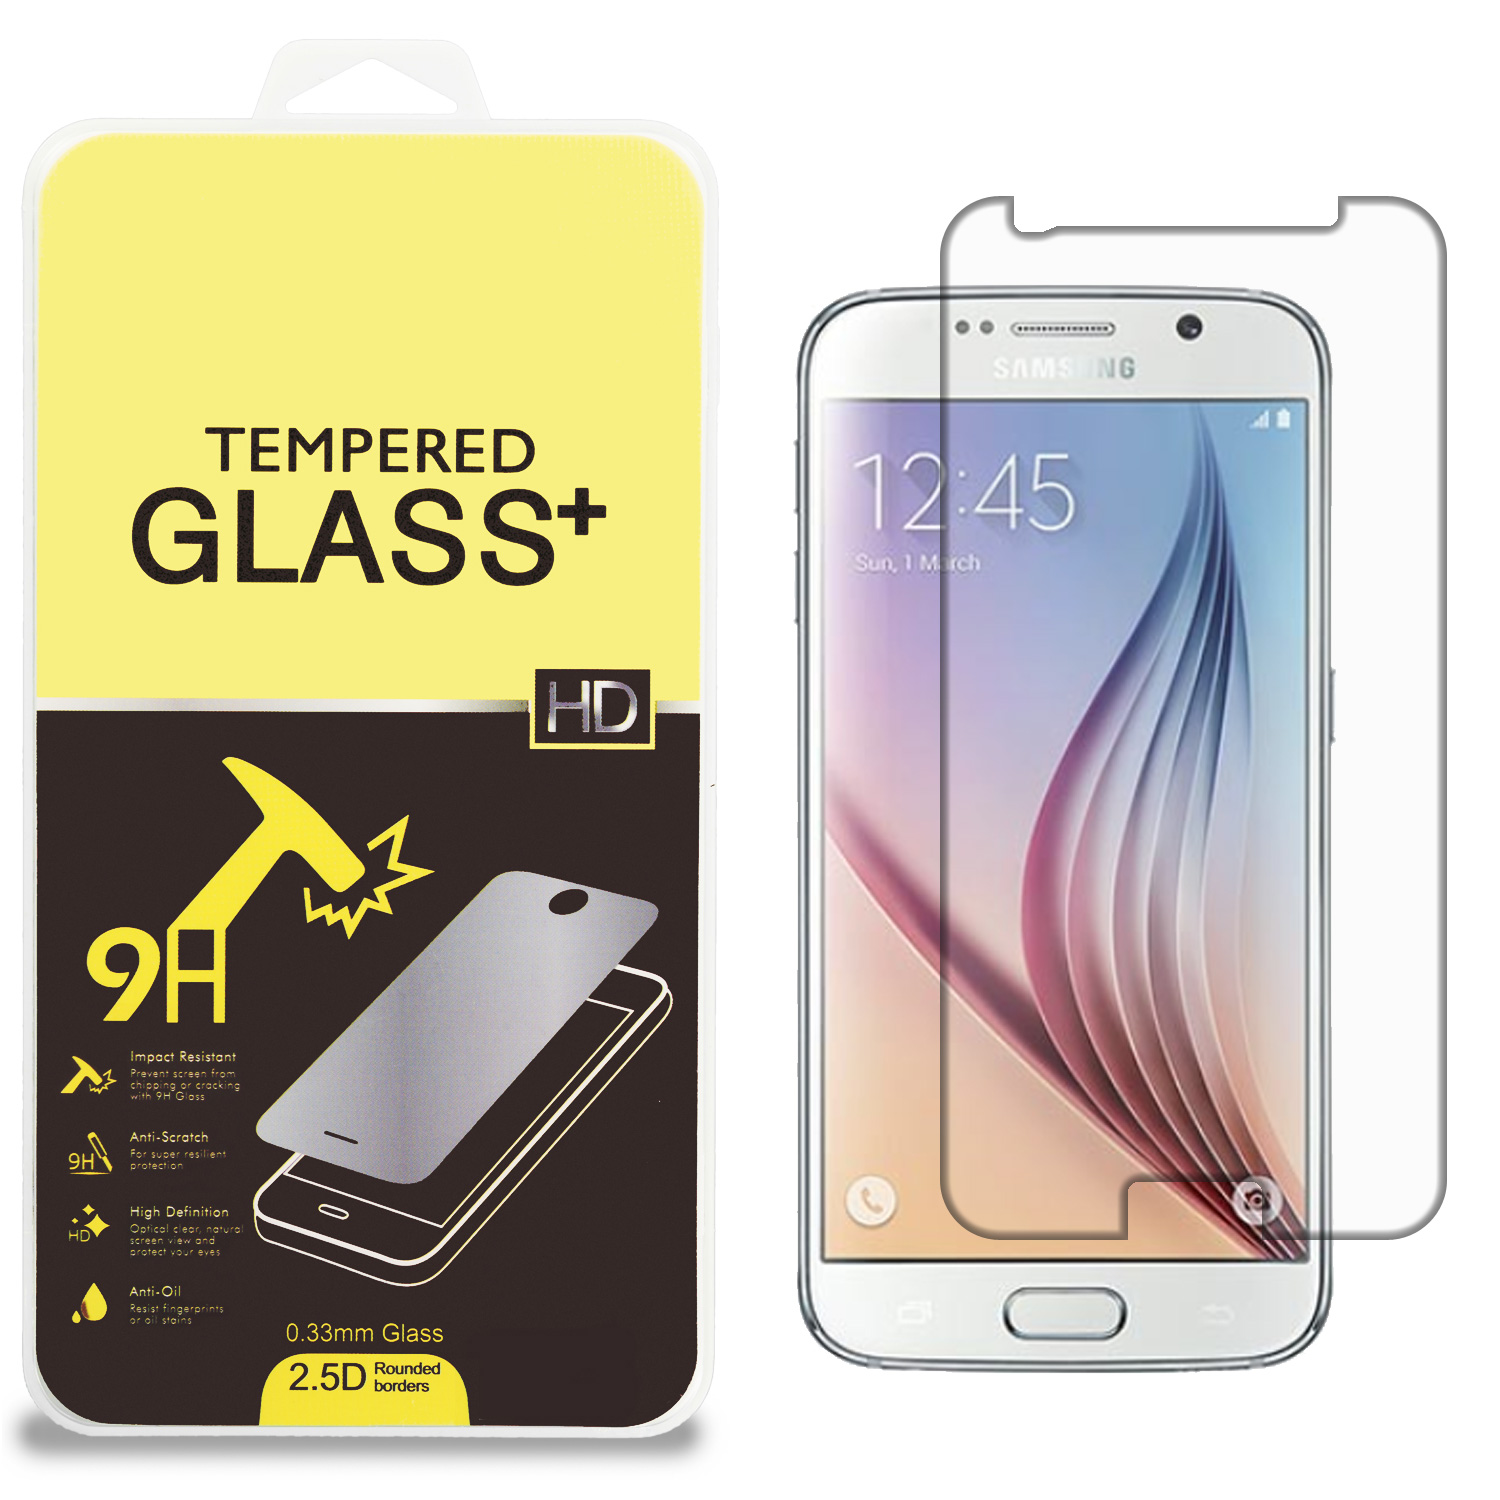 Samsung Galaxy S6 Clear Tempered Glass High Quality 0.33mm LCD Screen Protector